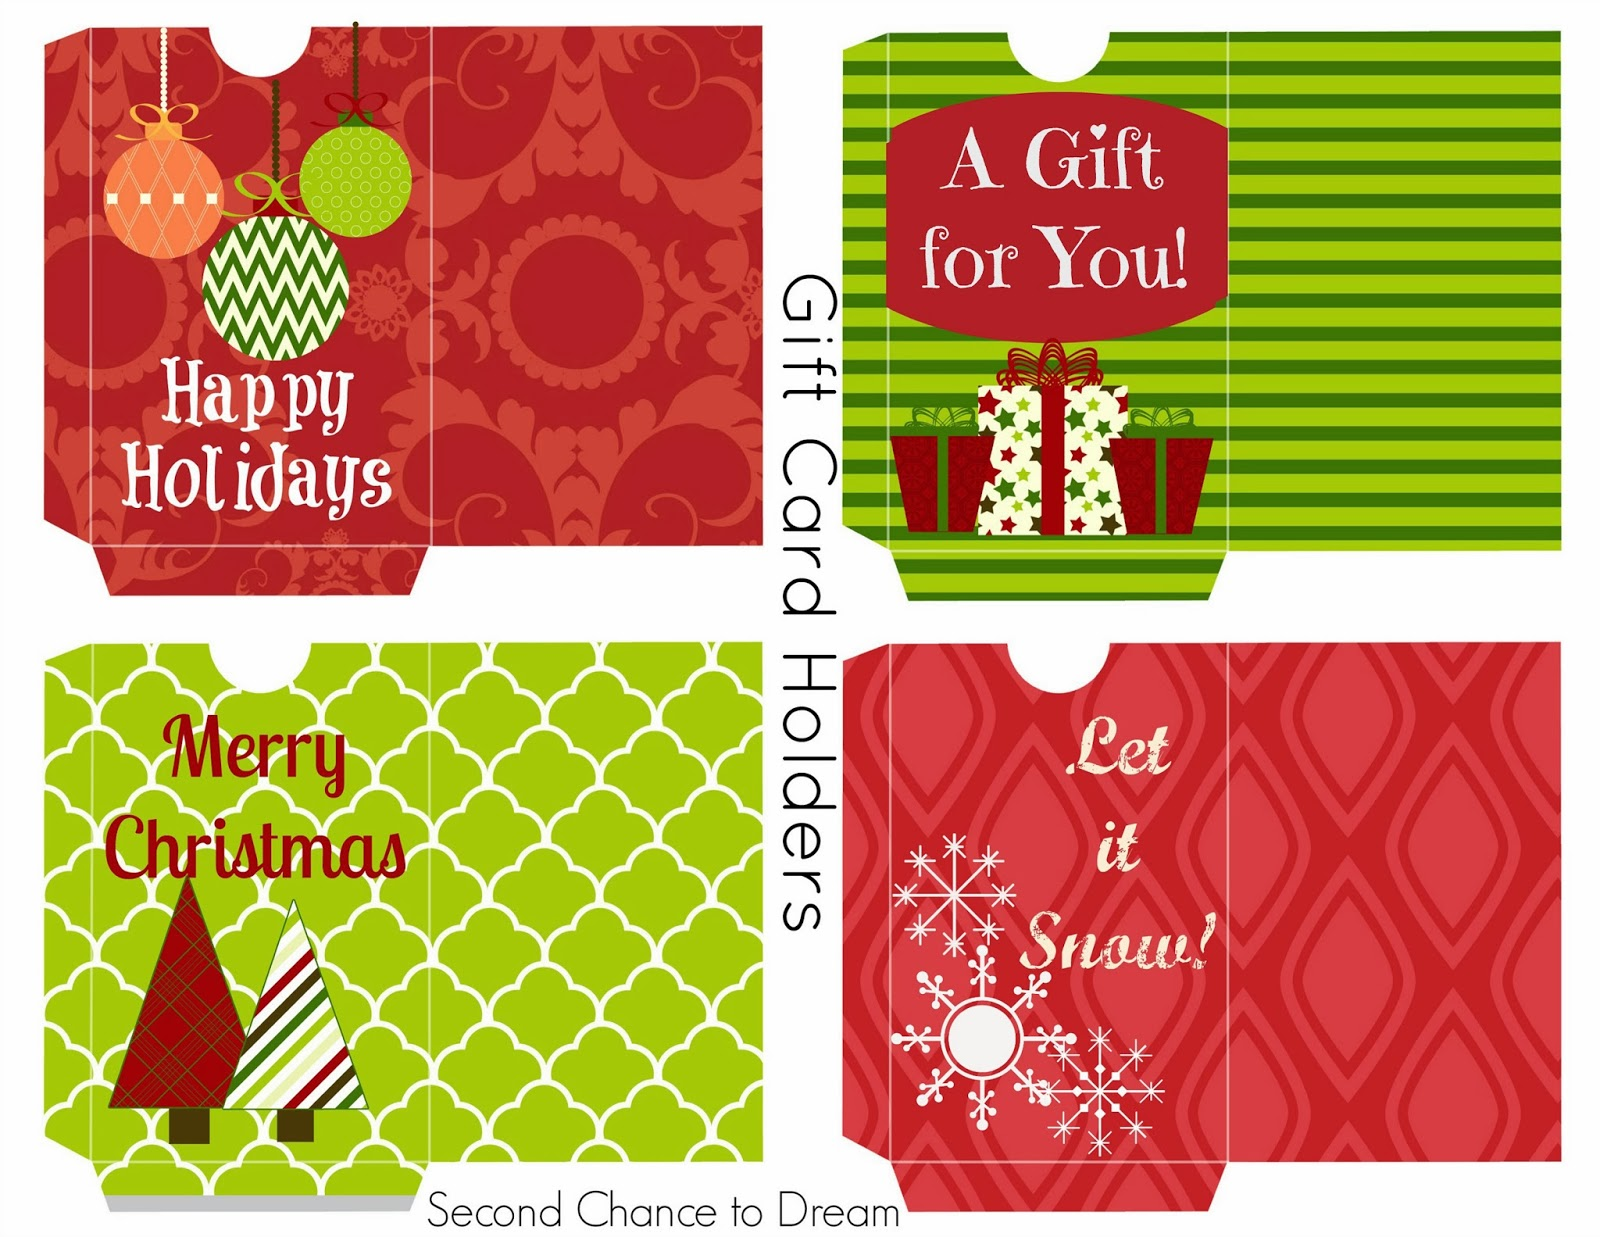 printable gift cards paid surveys for money marketing research printable gift cards easy ways to make money home do online surveys for money uk online market research companies in usa new on 2016